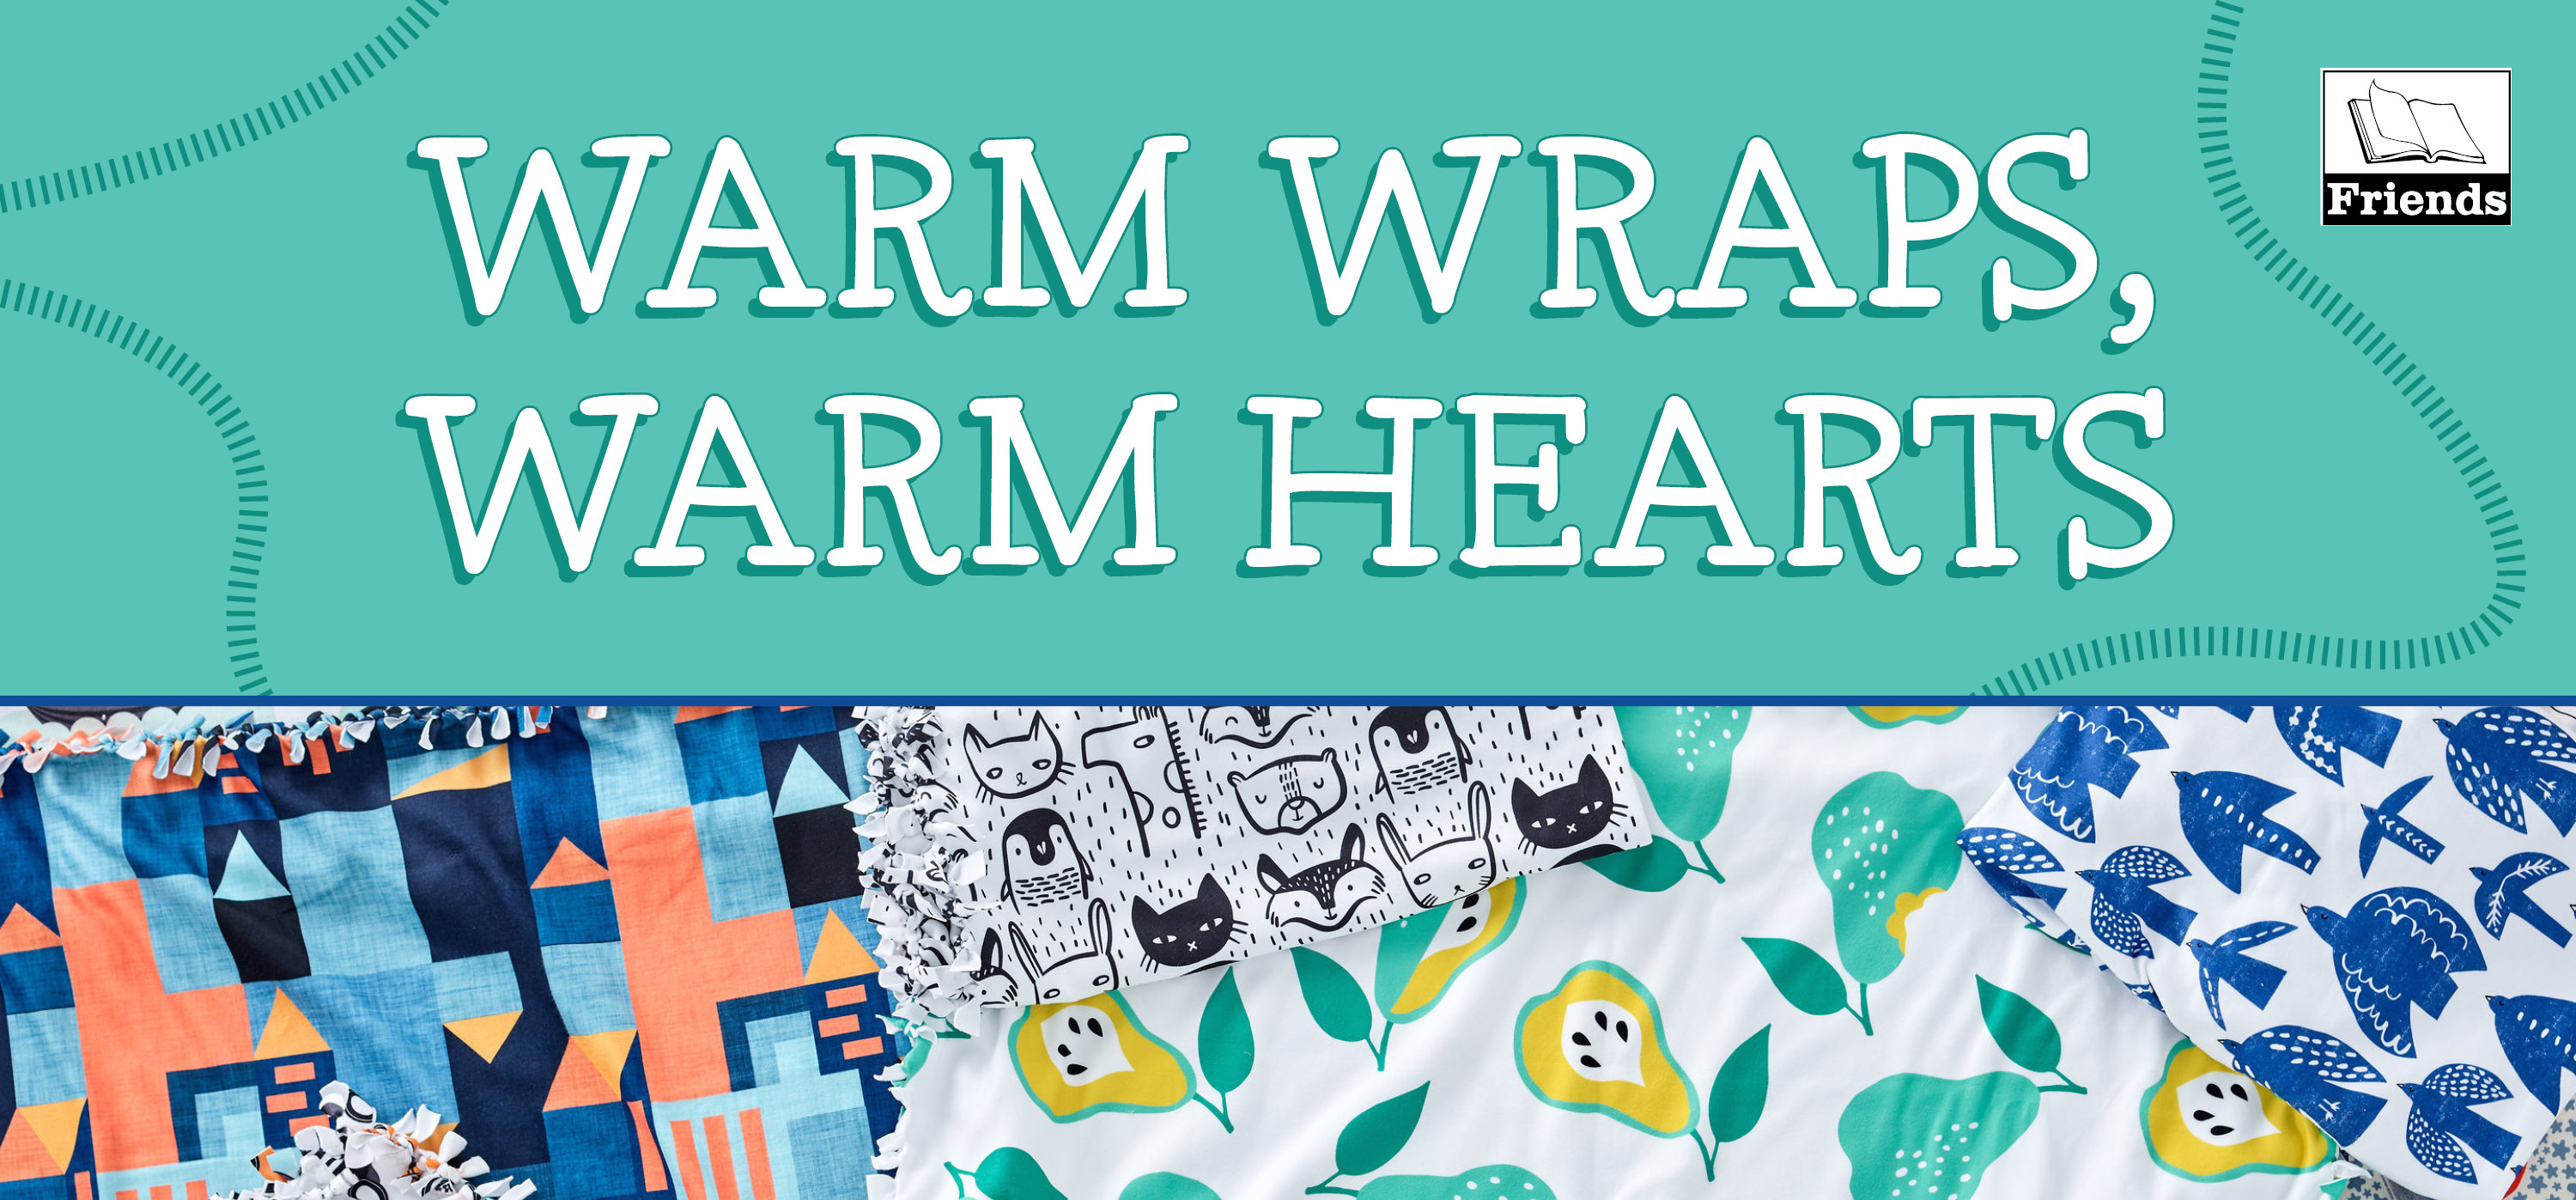 Warm Wraps, Warm Hearts